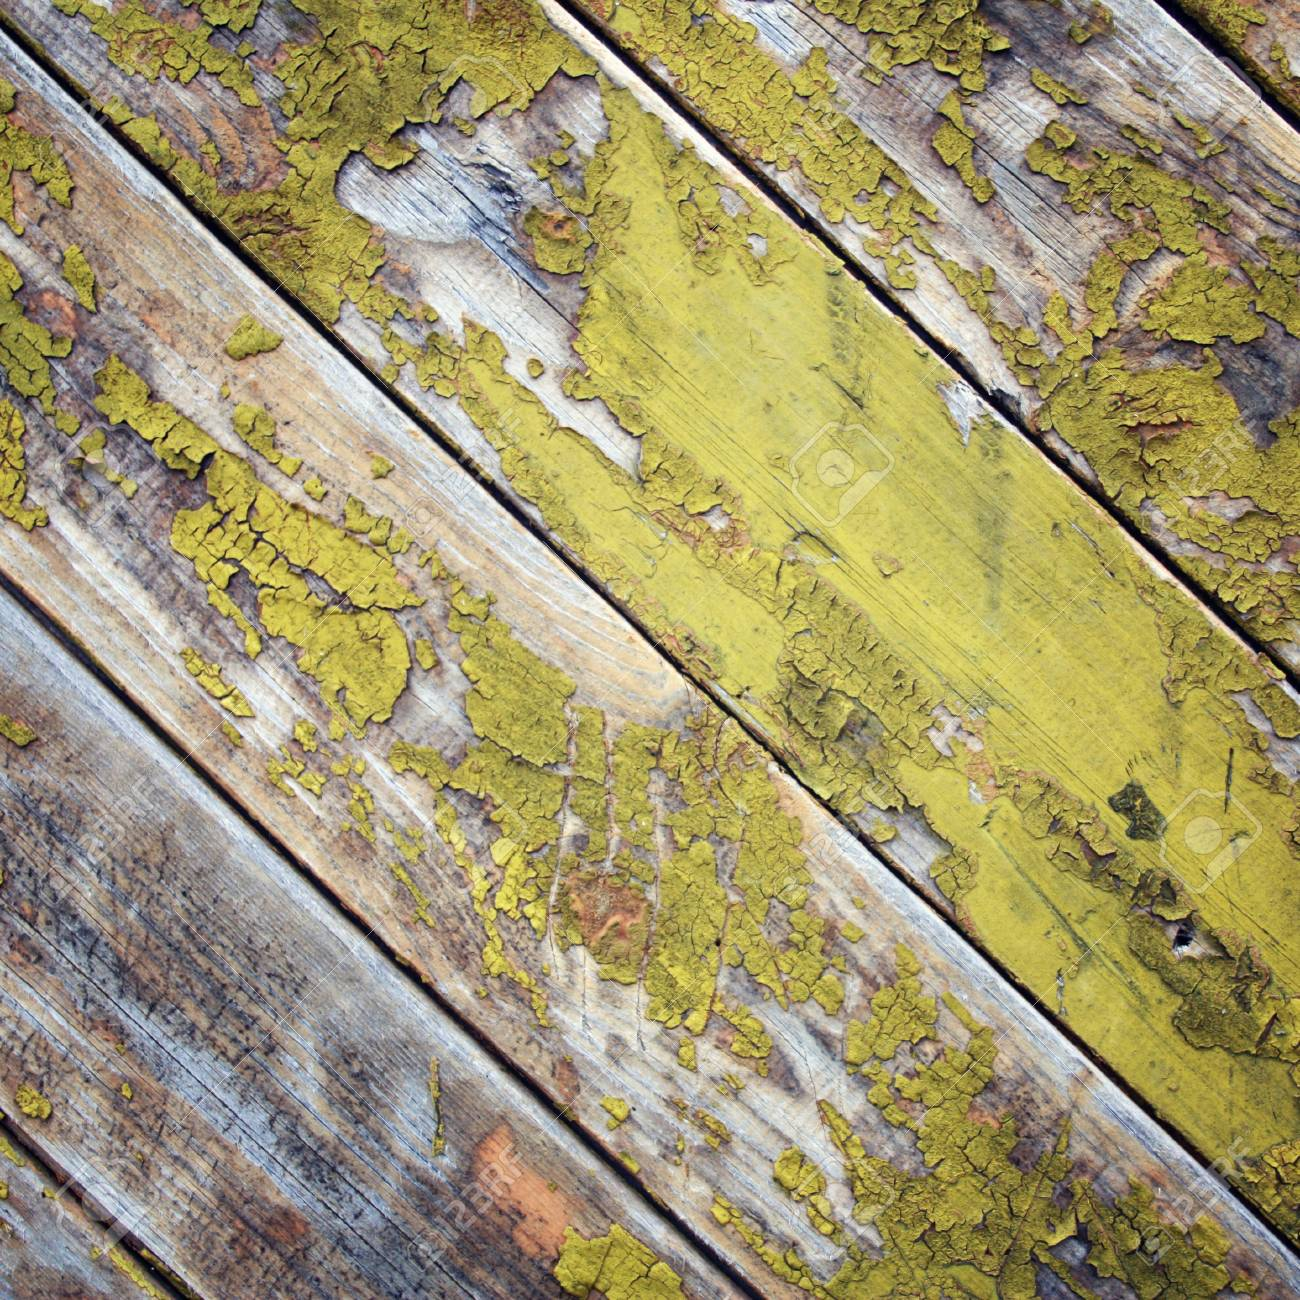 Dry Yellow Paint On The Wooden Surface. Peeling. Cracked Texture ...